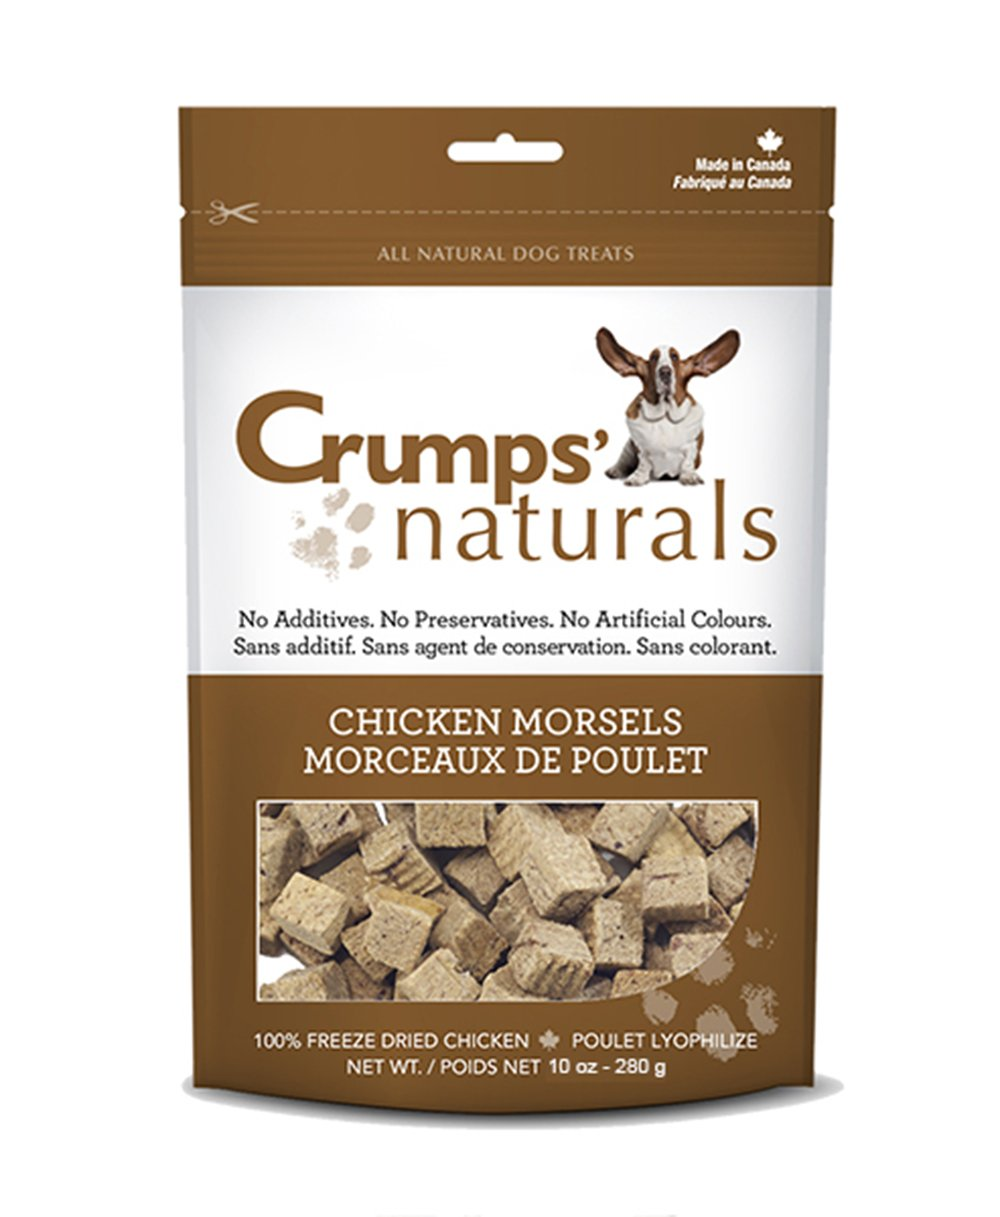 Crumps' Naturals Chicken Morsels for Pets, 4.7-Ounce